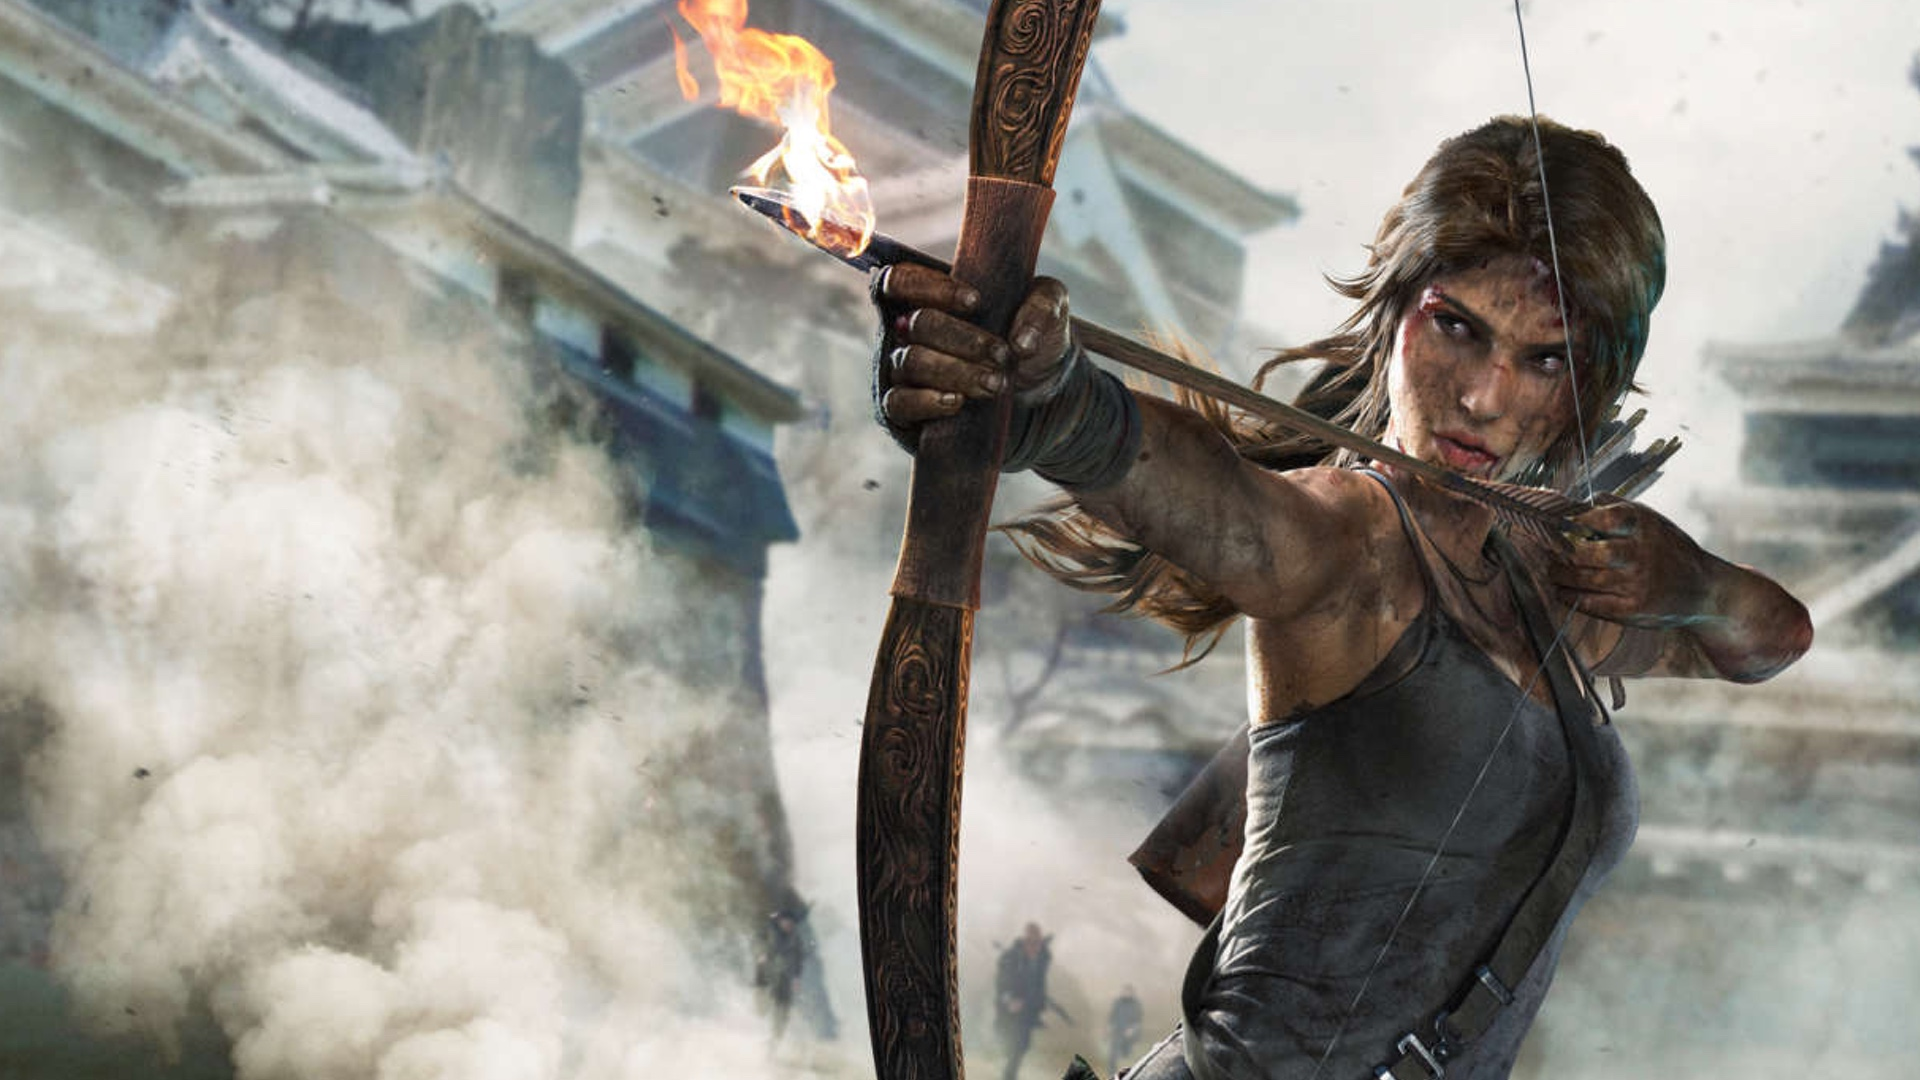 c3002c105c8c69 ... that the upcoming Tomb Raider movie reboot starring Alicia Vikander  would be using elements from the most recent video game adventures of Lara  Croft